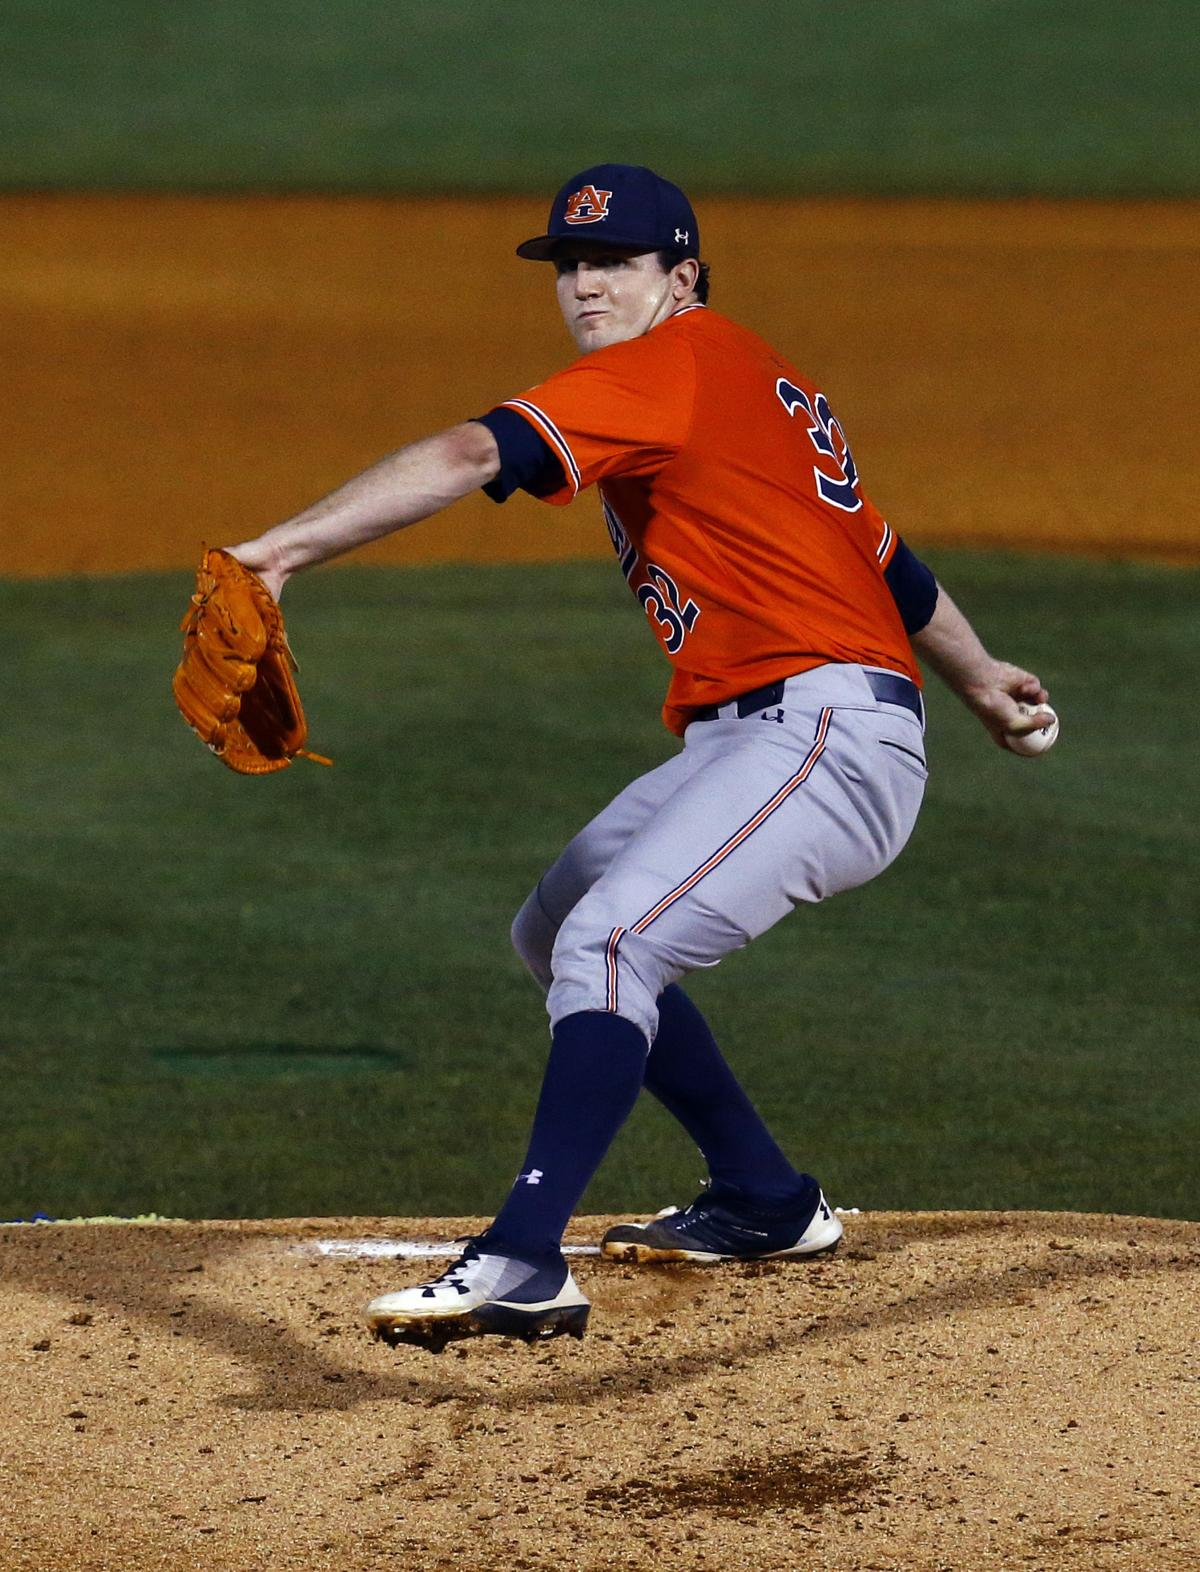 d5b3175ed 1 to Tigers in MLB Draft. By Dennis Waszak Jr. File-This May 24, 2018, file  photo shows Auburn pitcher Casey Mize throwing